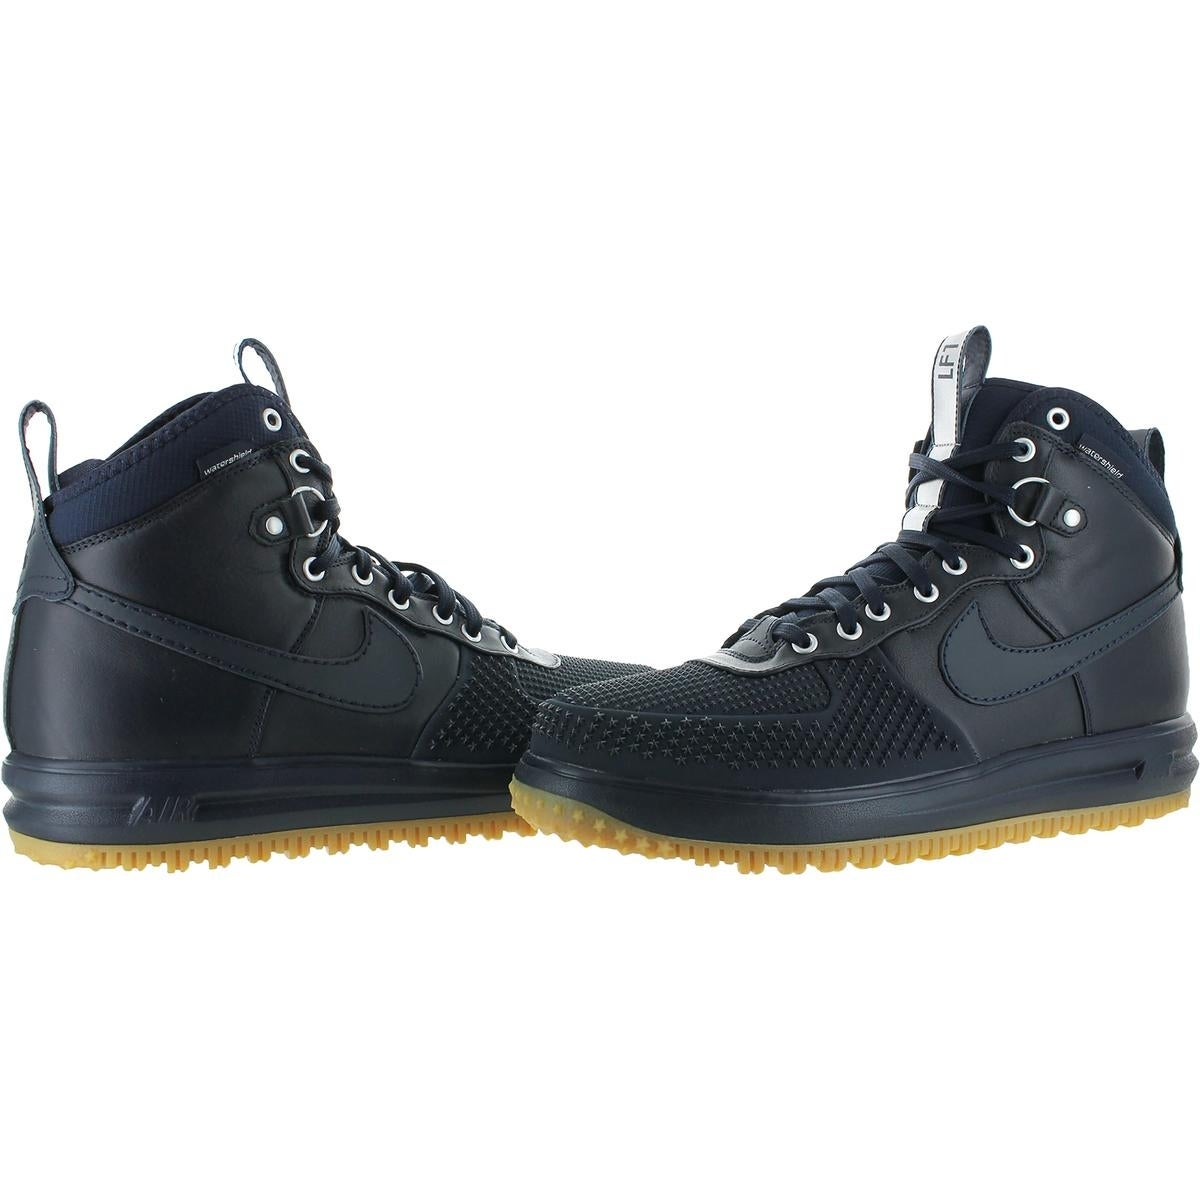 new product 8a288 26e15 Shop Nike Mens Lunar Force 1 Duckboot Fashion Sneakers Watershield High-Top  - Free Shipping Today - Overstock - 21846705